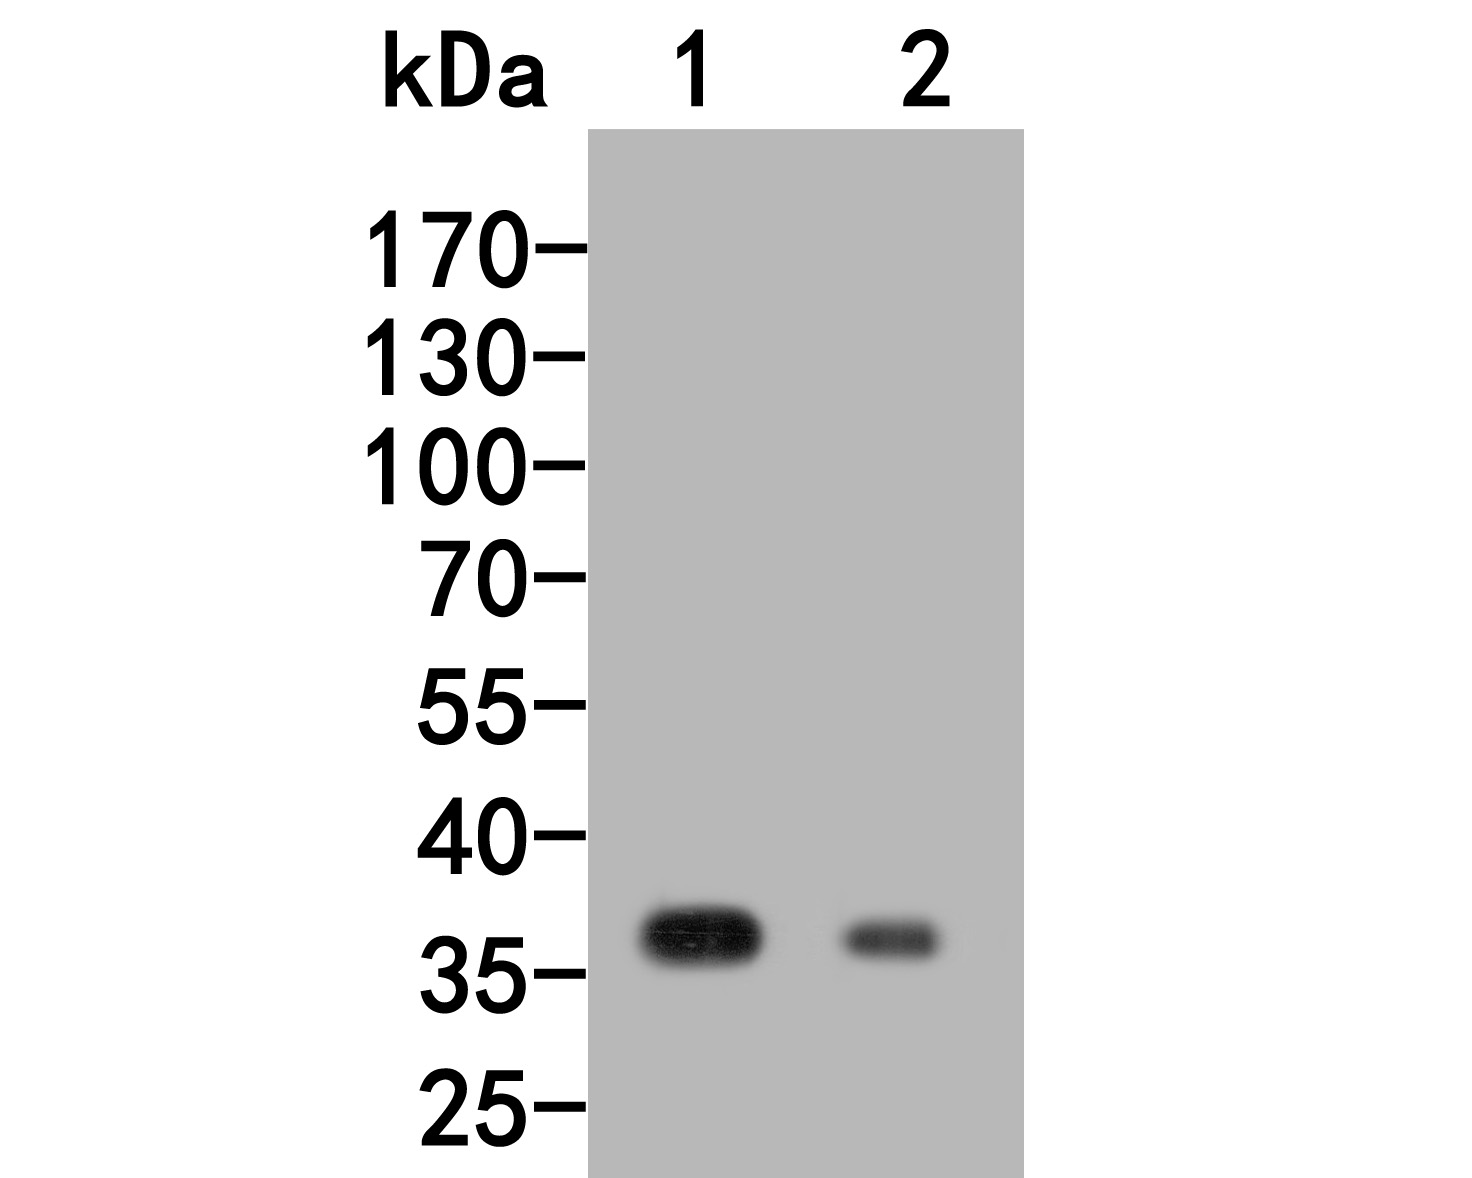 Western blot analysis of RGMA on different lysates. Proteins were transferred to a PVDF membrane and blocked with 5% BSA in PBS for 1 hour at room temperature. The primary antibody (HA500148, 1/1,000) was used in 5% BSA at room temperature for 2 hours. Goat Anti-Rabbit IgG - HRP Secondary Antibody (HA1001) at 1:200,000 dilution was used for 1 hour at room temperature.<br /> Positive control: <br /> Lane 1: Hela cell lysate<br /> Lane 2: Human skeletal muscle tissue lysate